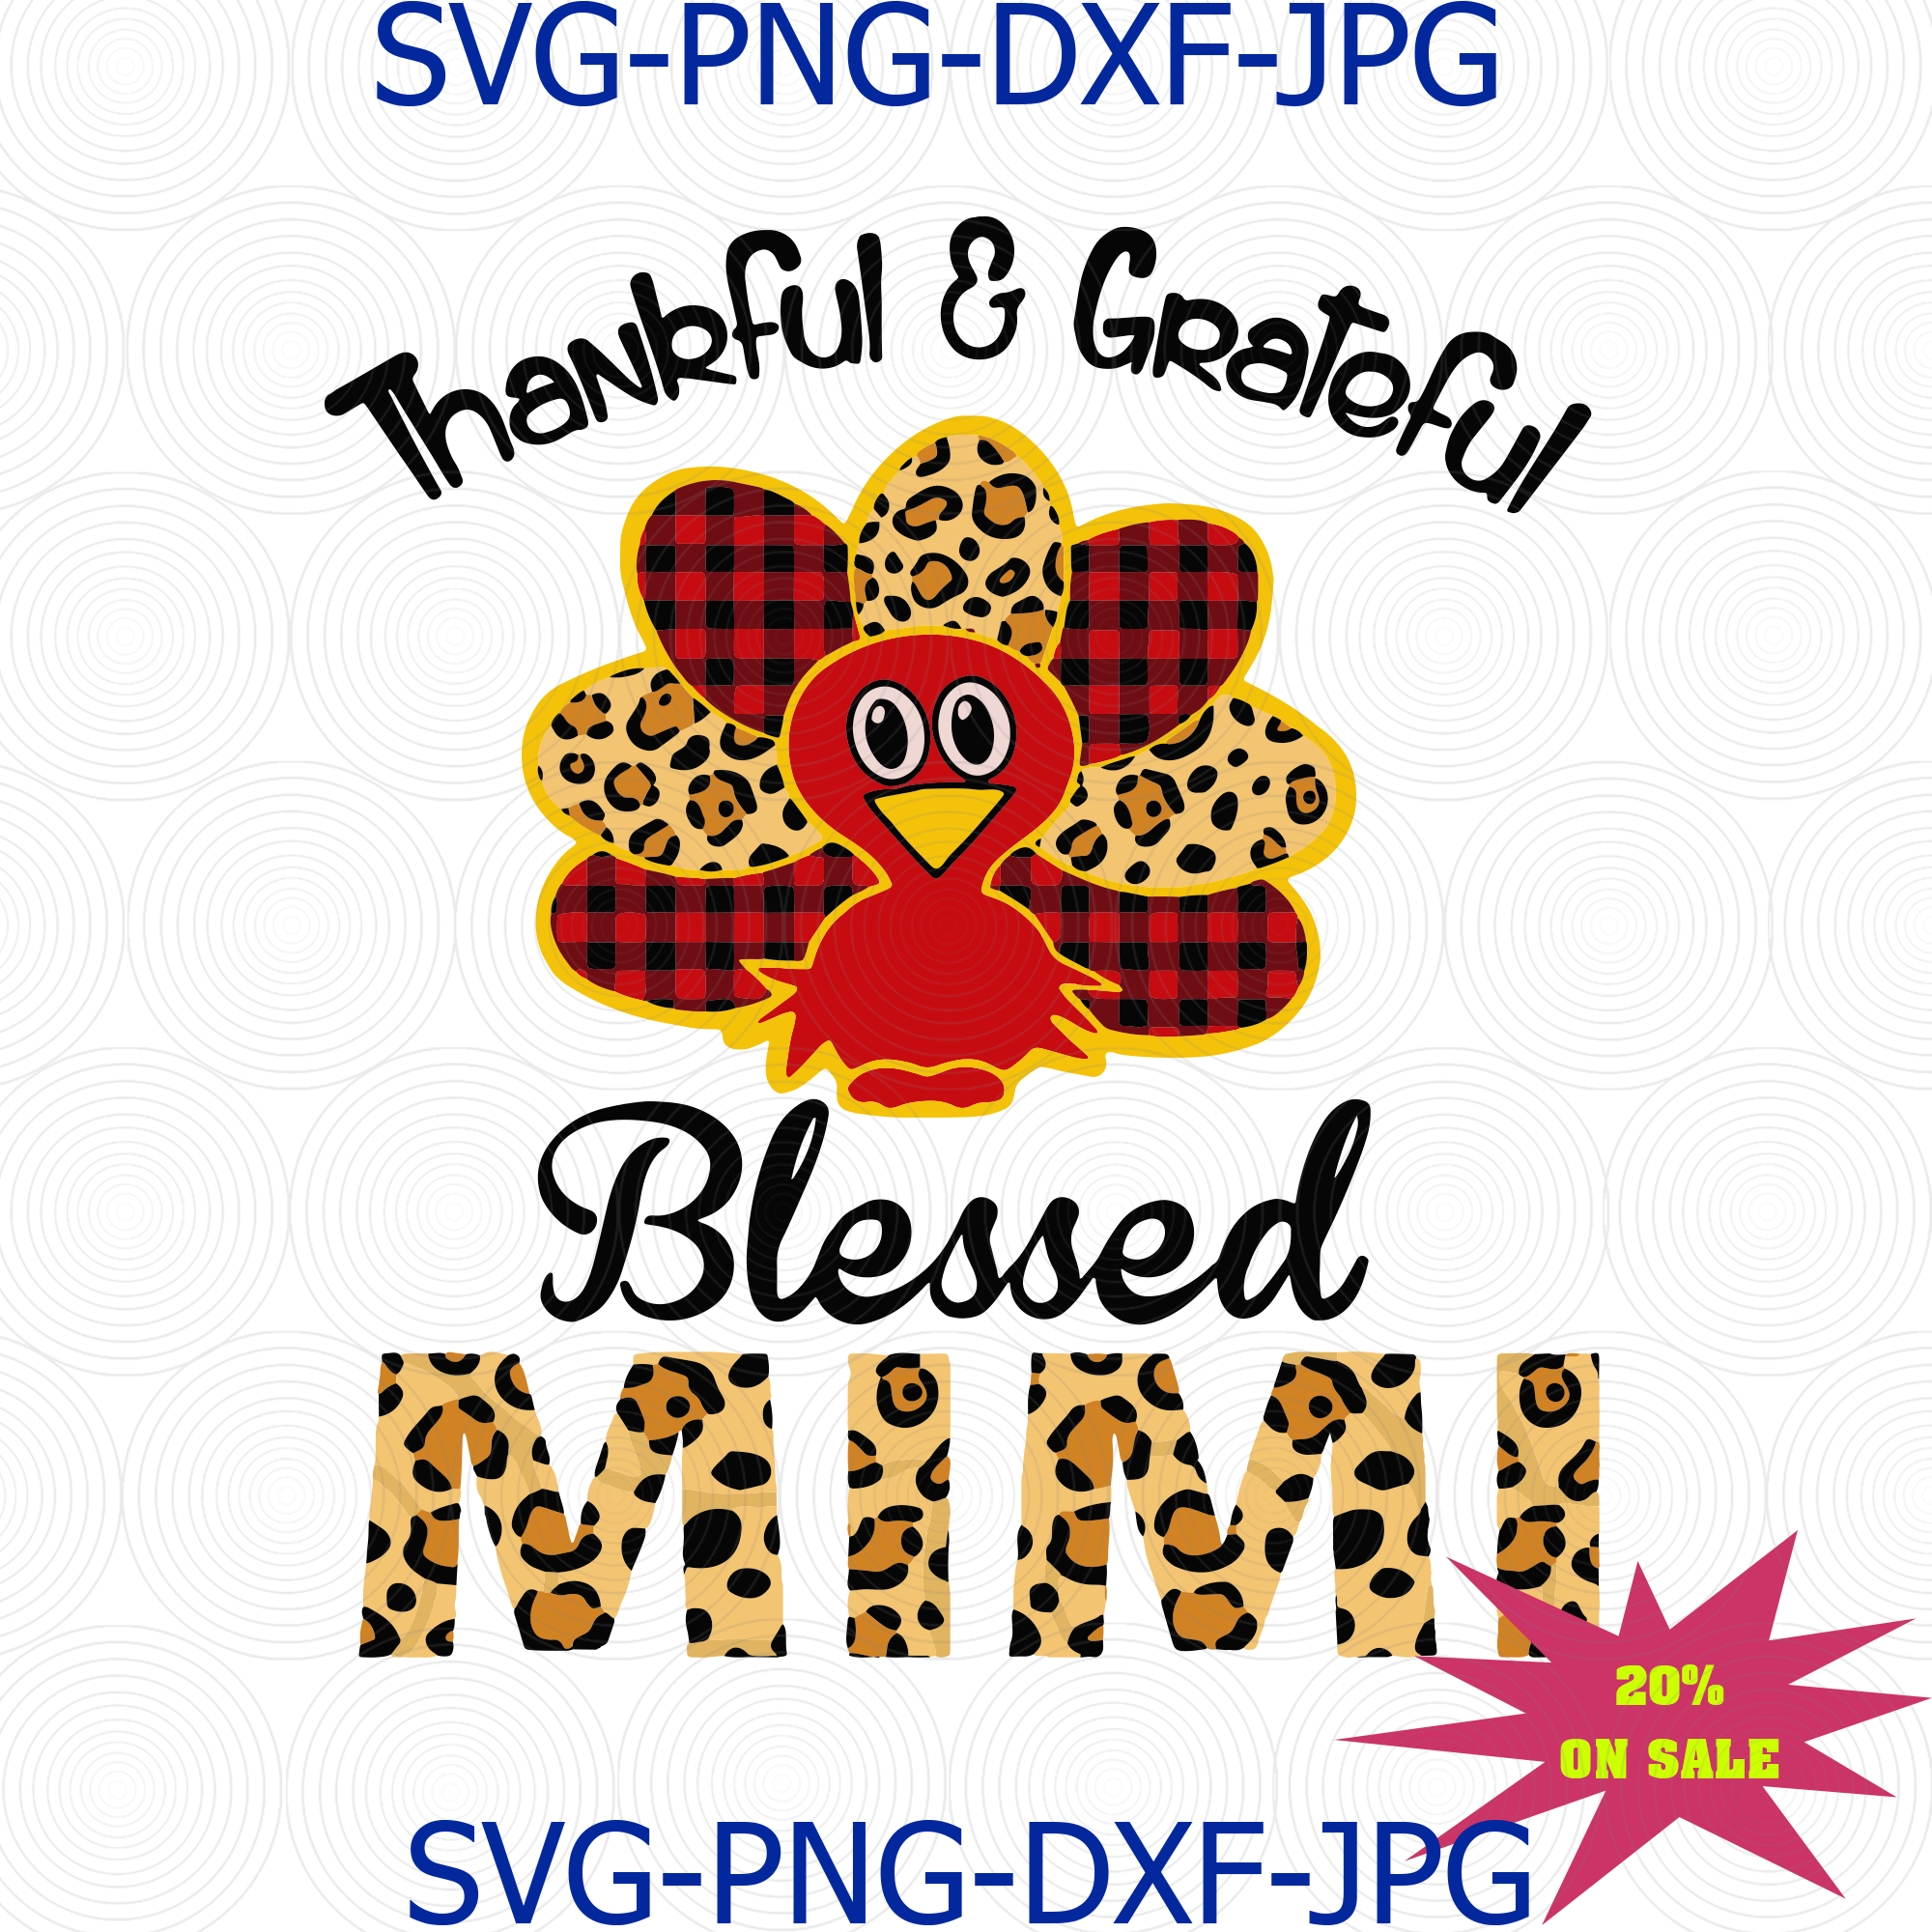 Thankful And Grateful Blessed Mimi Thanksgiving By Digital4u On